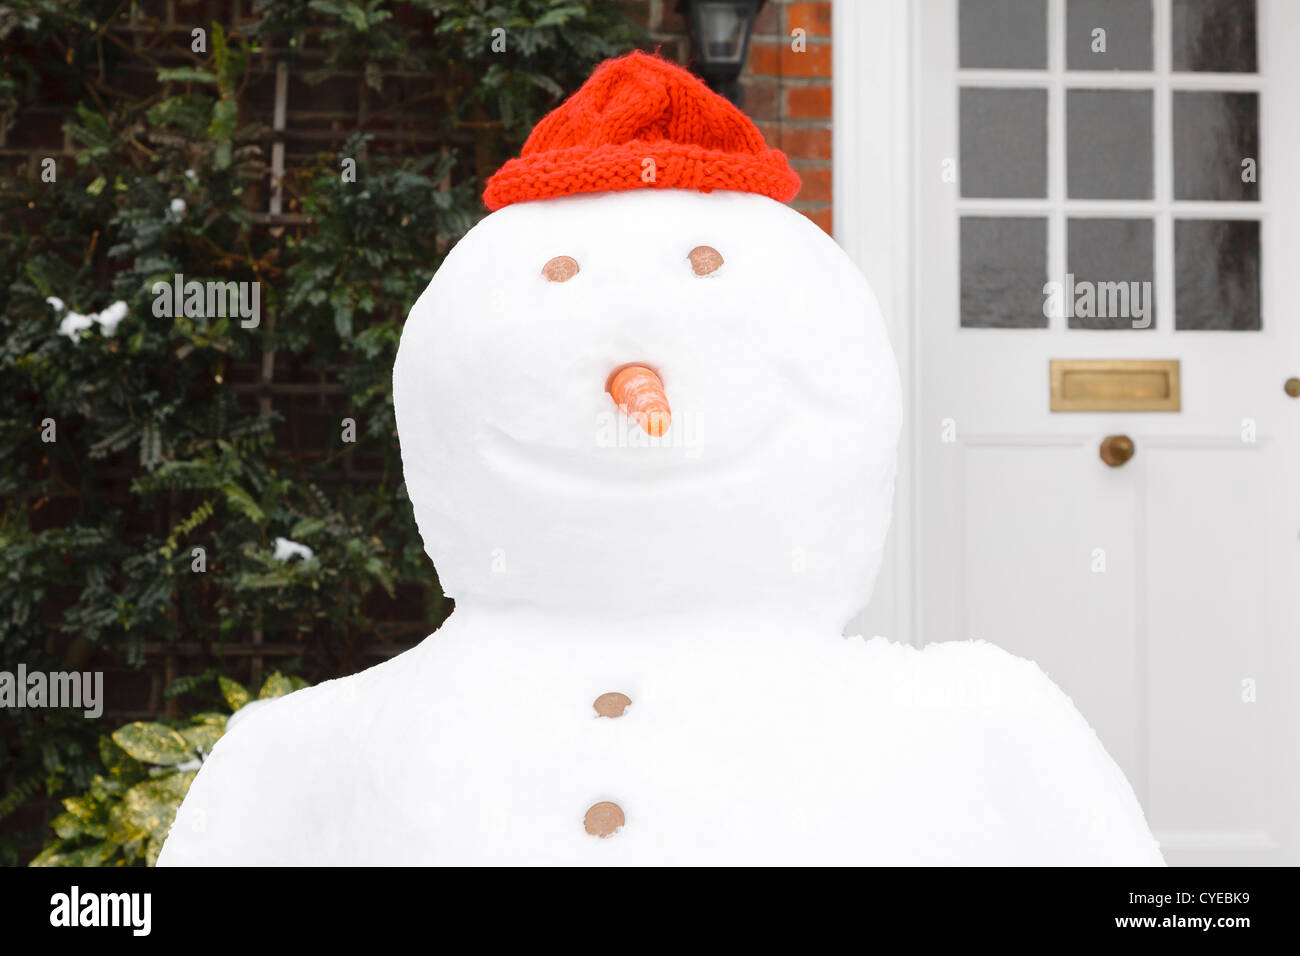 Close up of snowman with red hat and smile - Stock Image